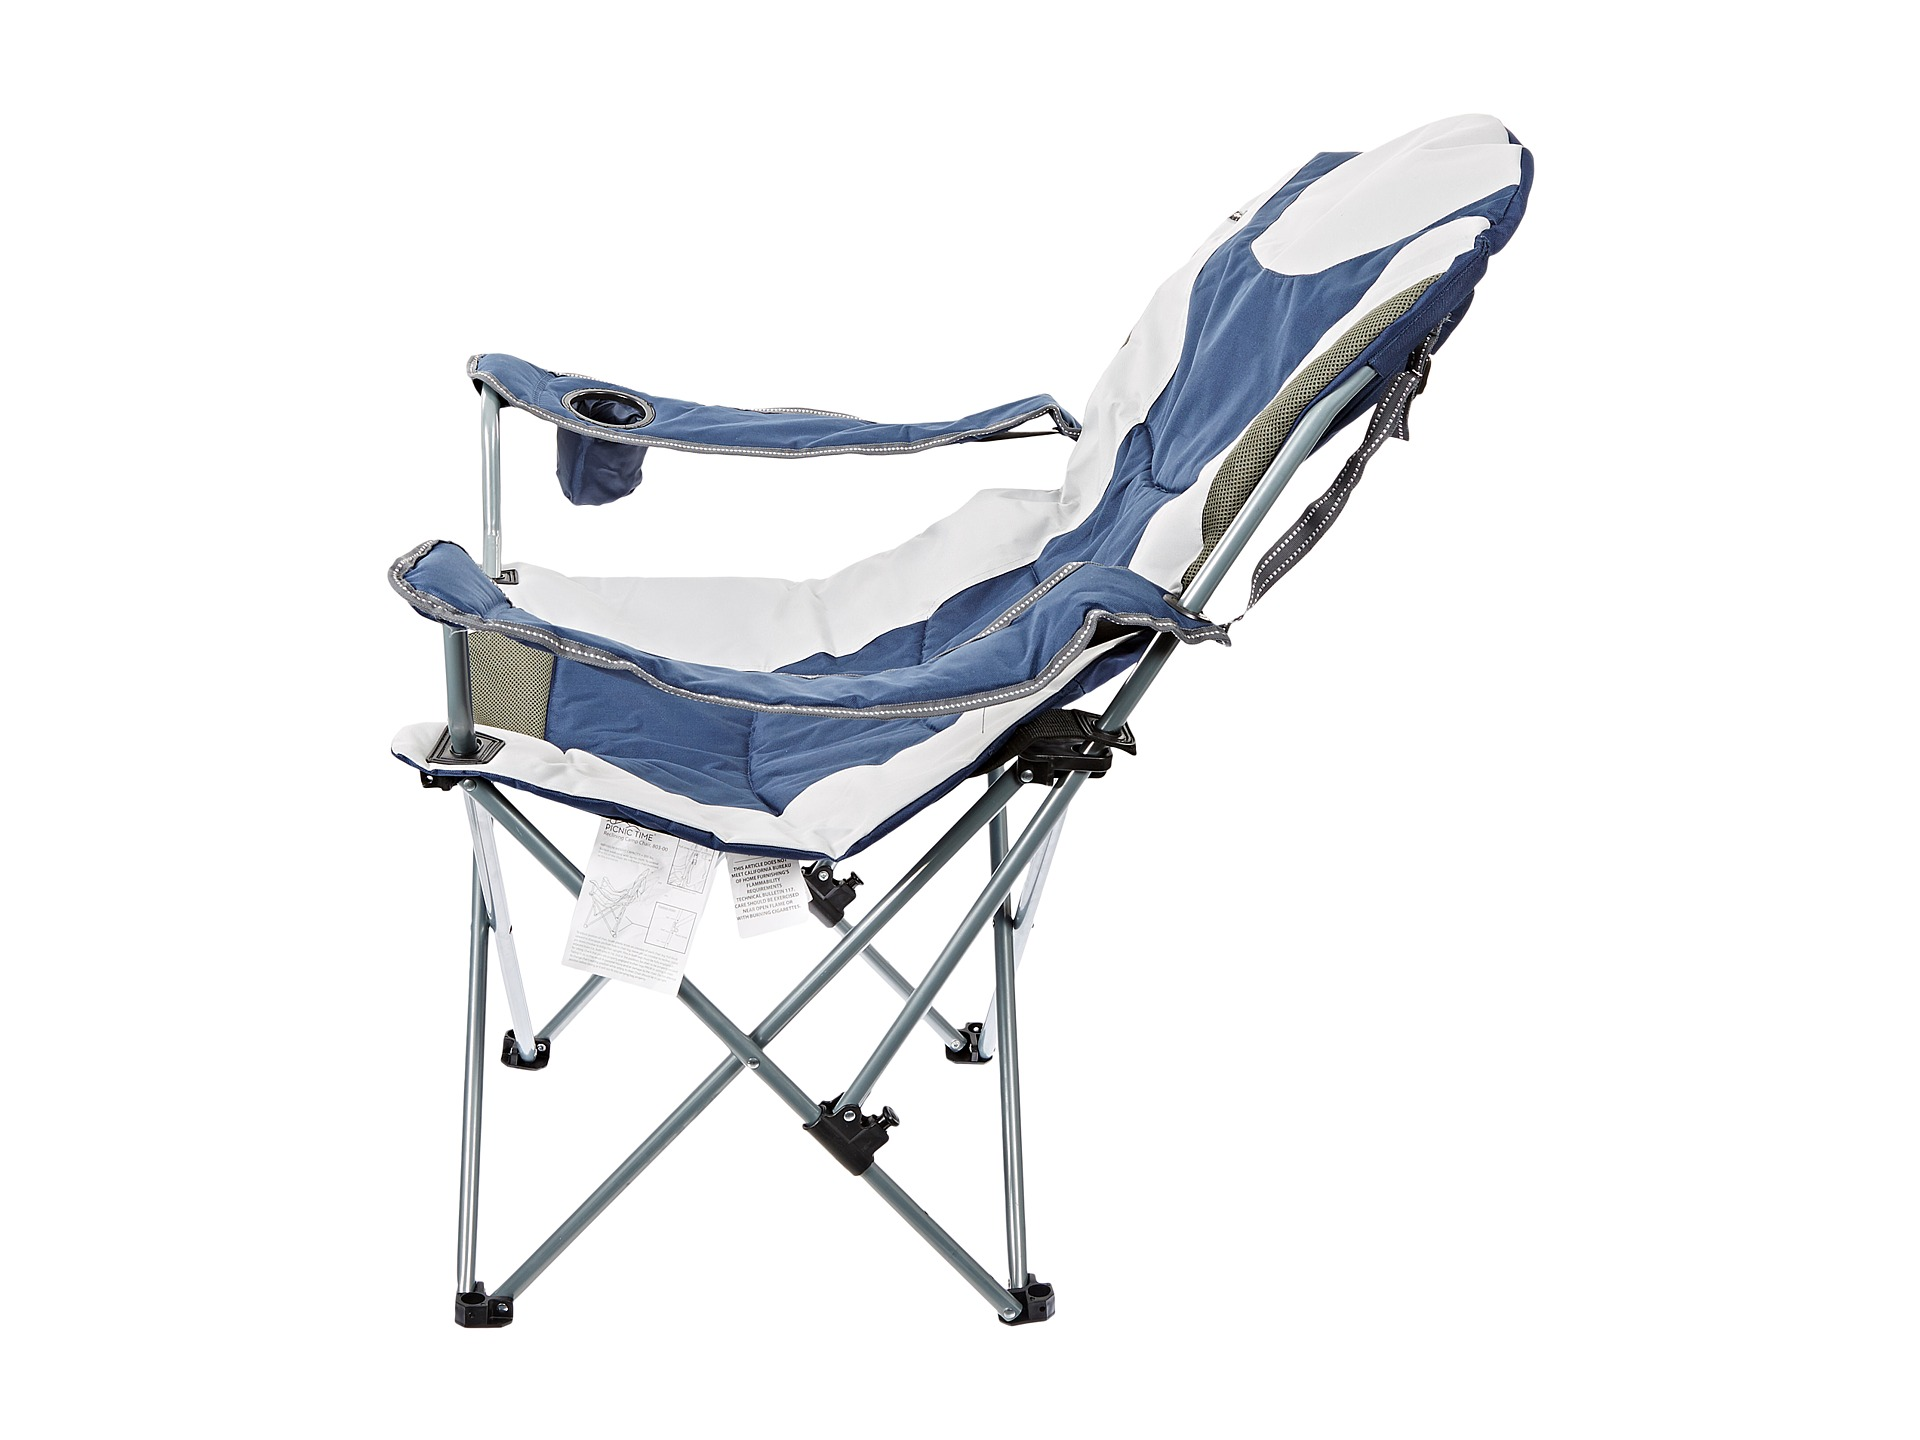 folding picnic chairs b q rei camp stowaway low chair time reclining shipped free at zappos